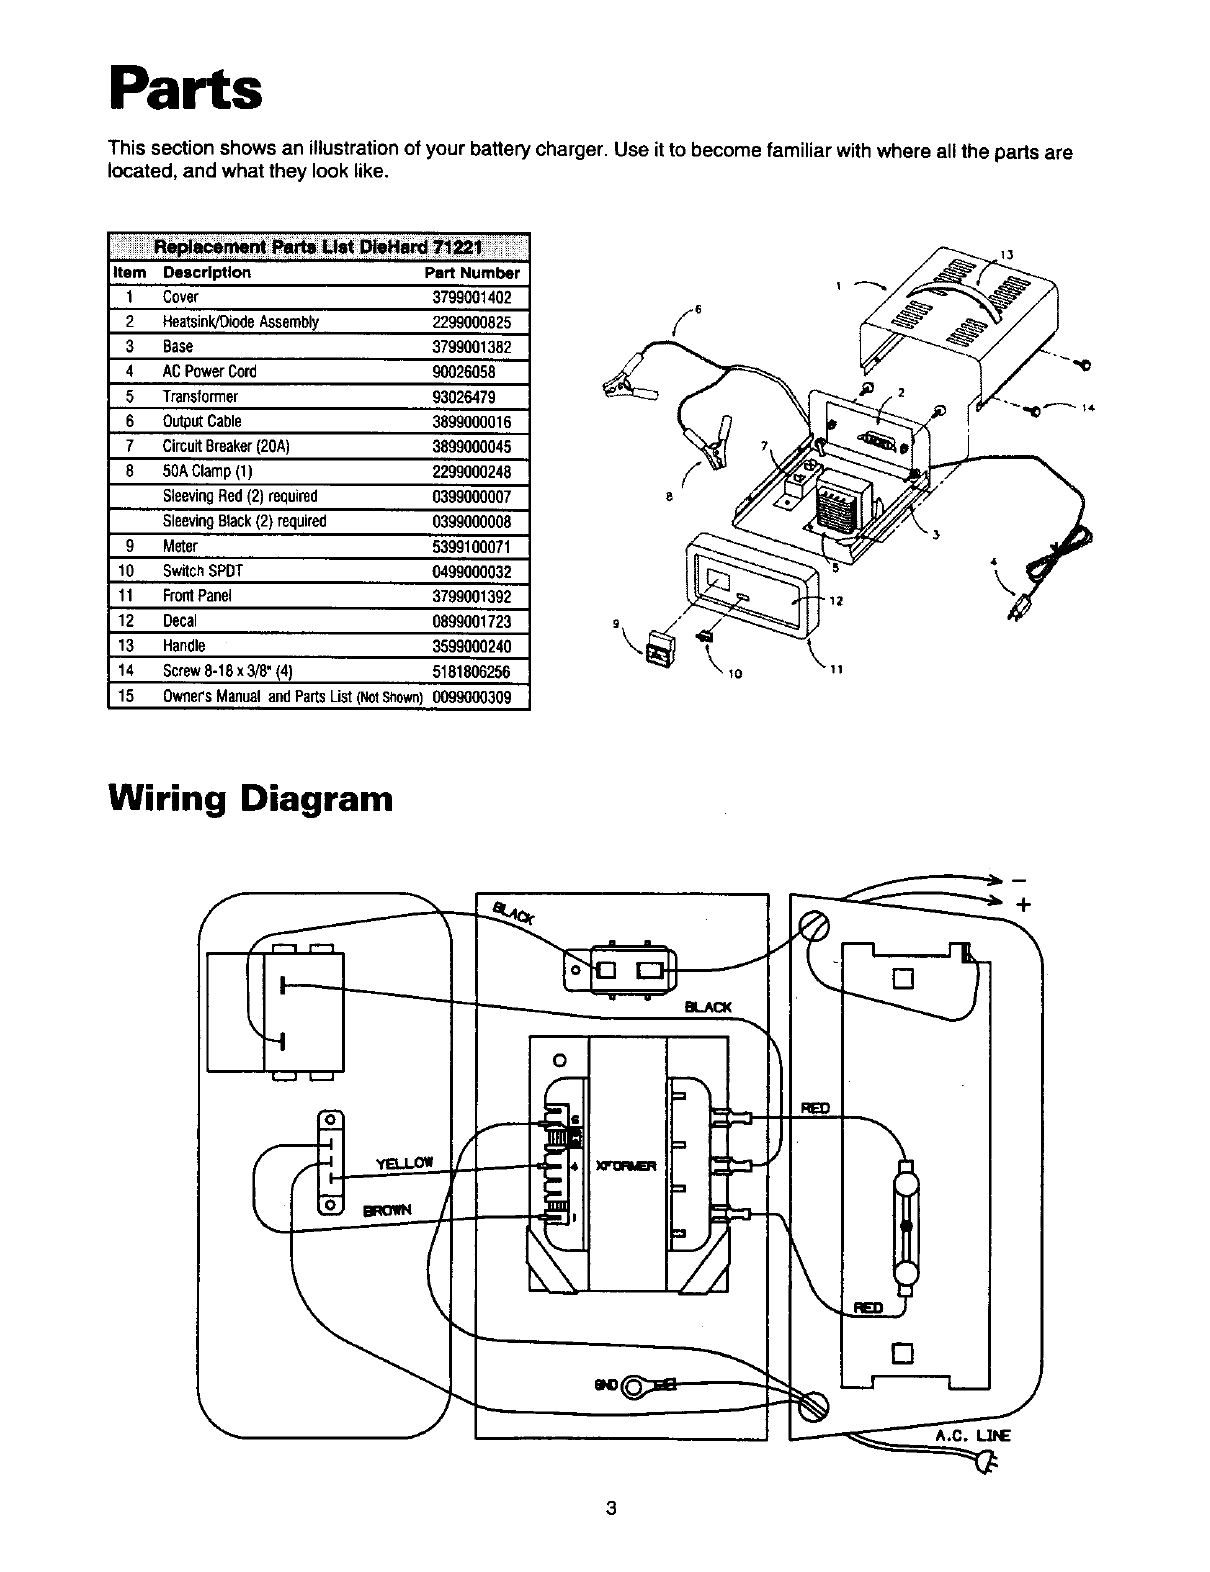 Sears Battery Charger Wiring Diagram -Studio Wiring Diagrams | Begeboy Wiring  Diagram SourceBegeboy Wiring Diagram Source